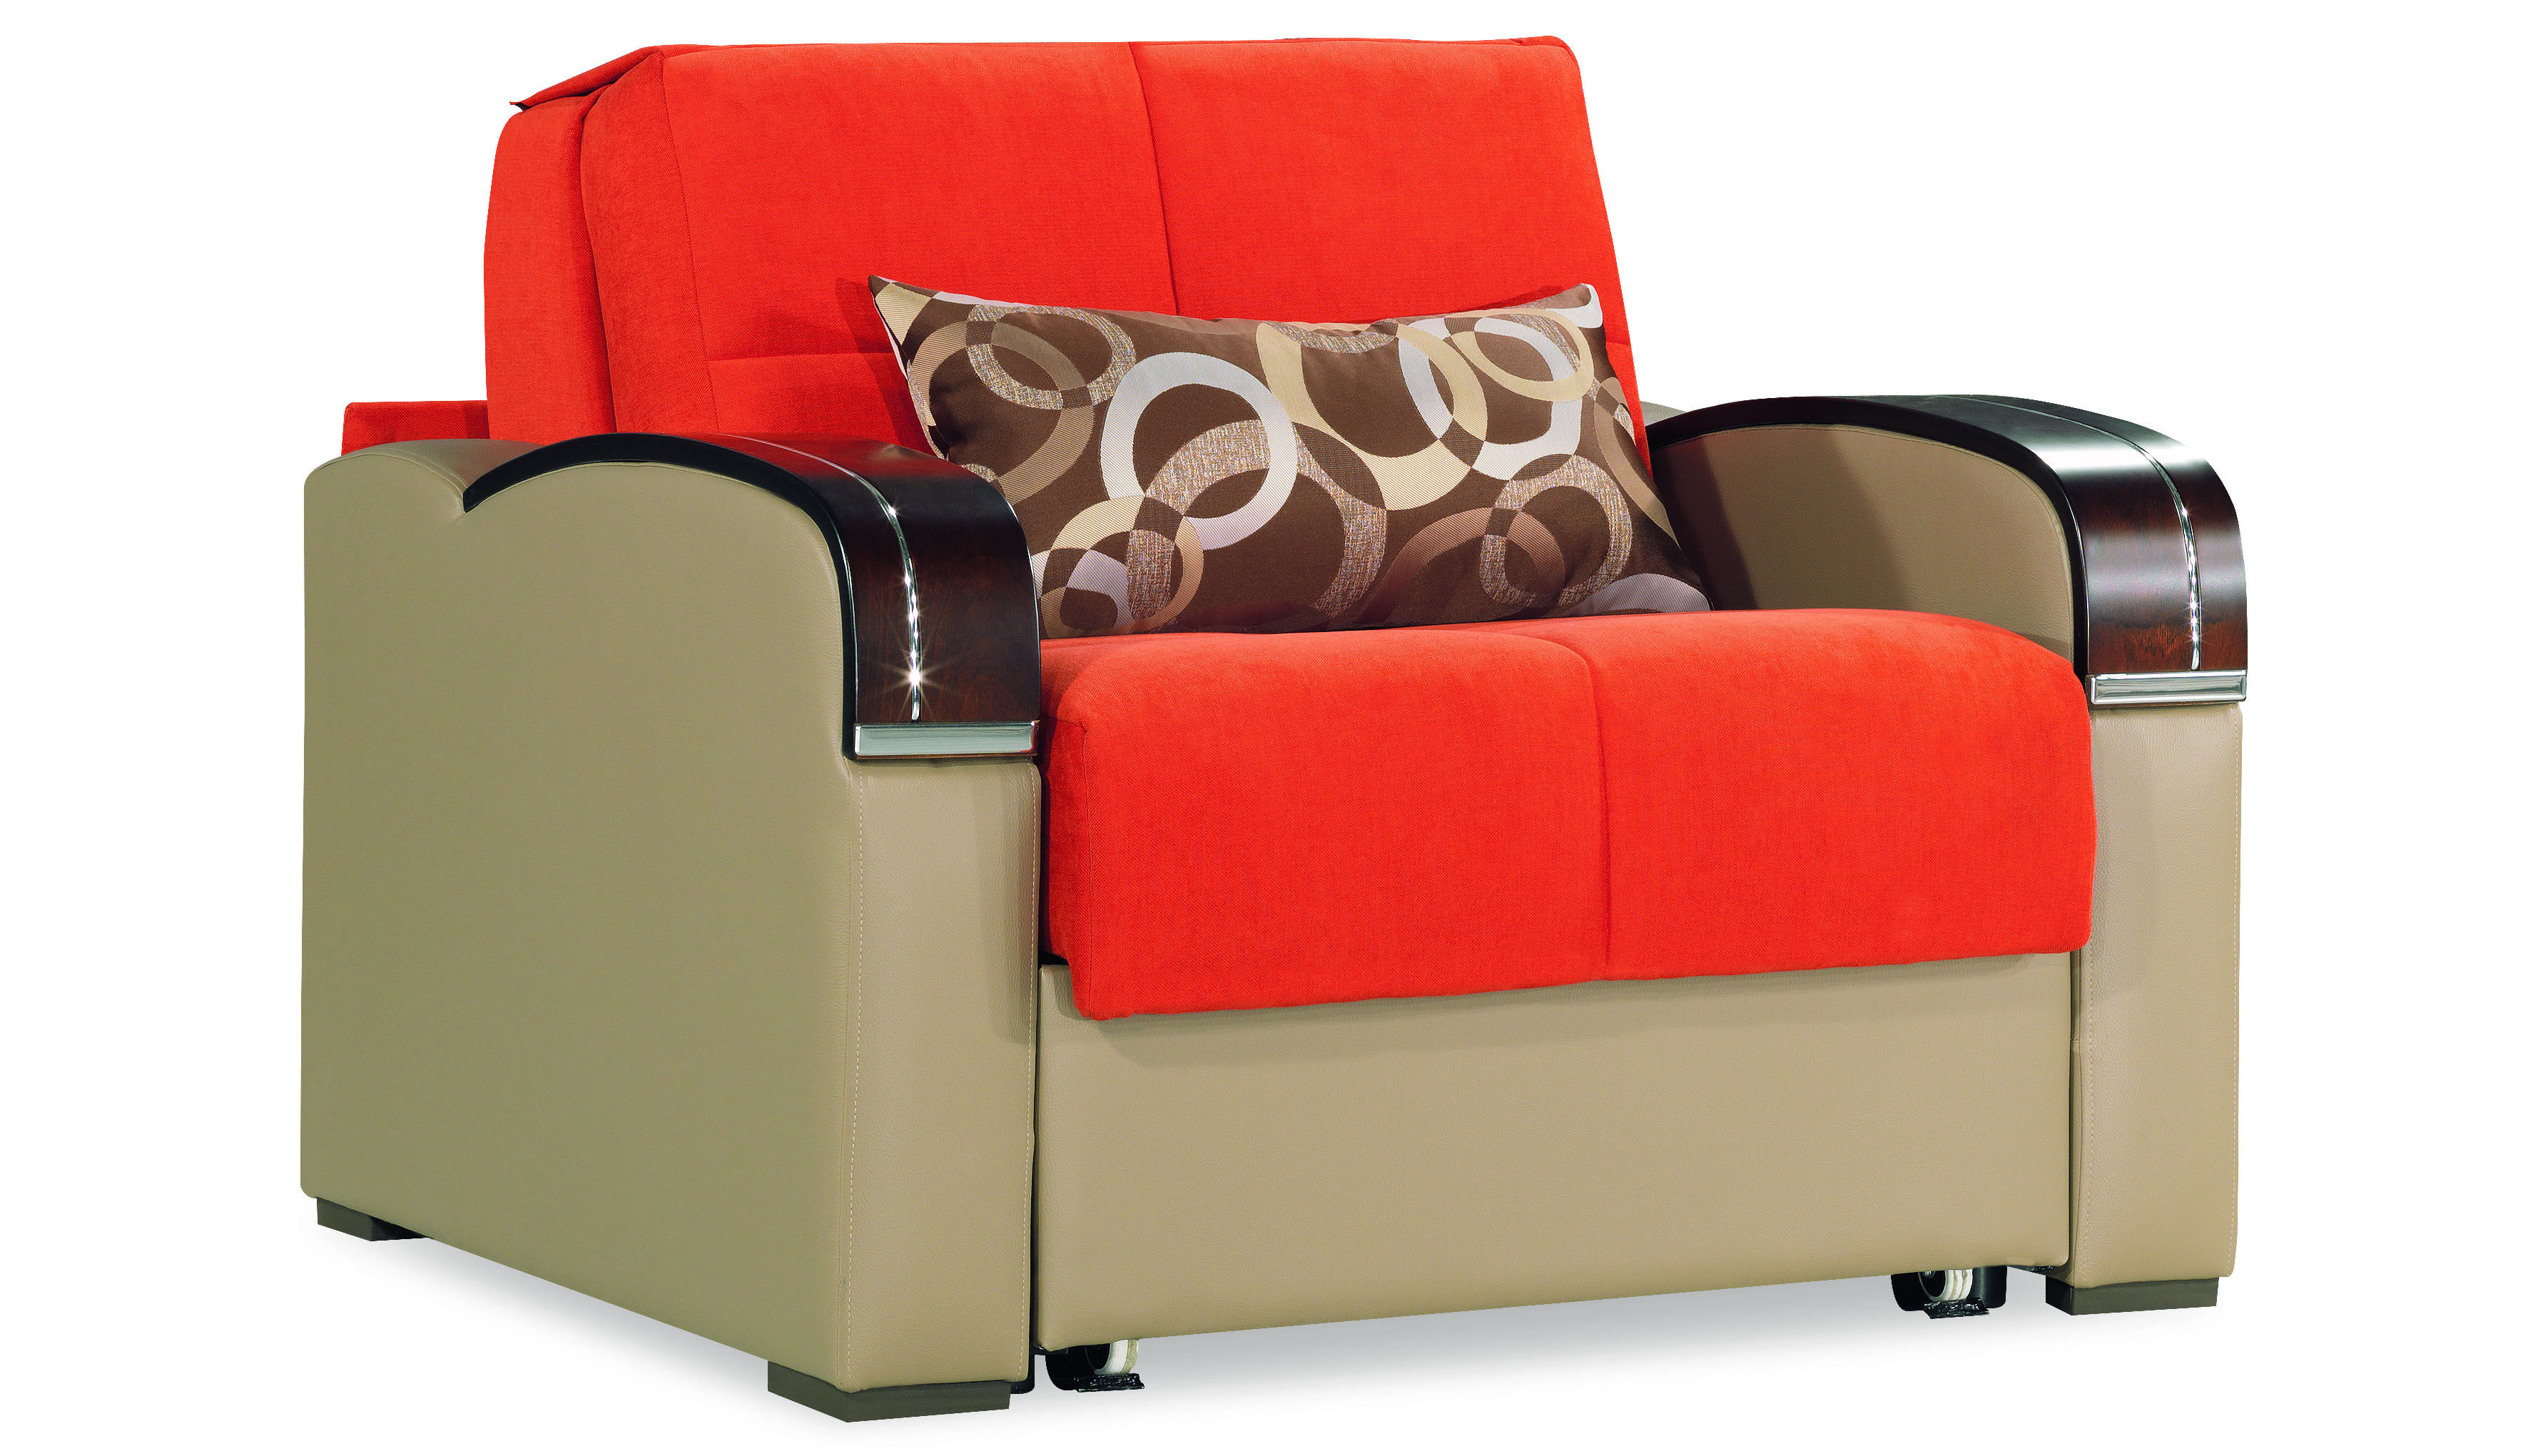 Sleep Plus Orange Convertible Chair Bed By Casamode